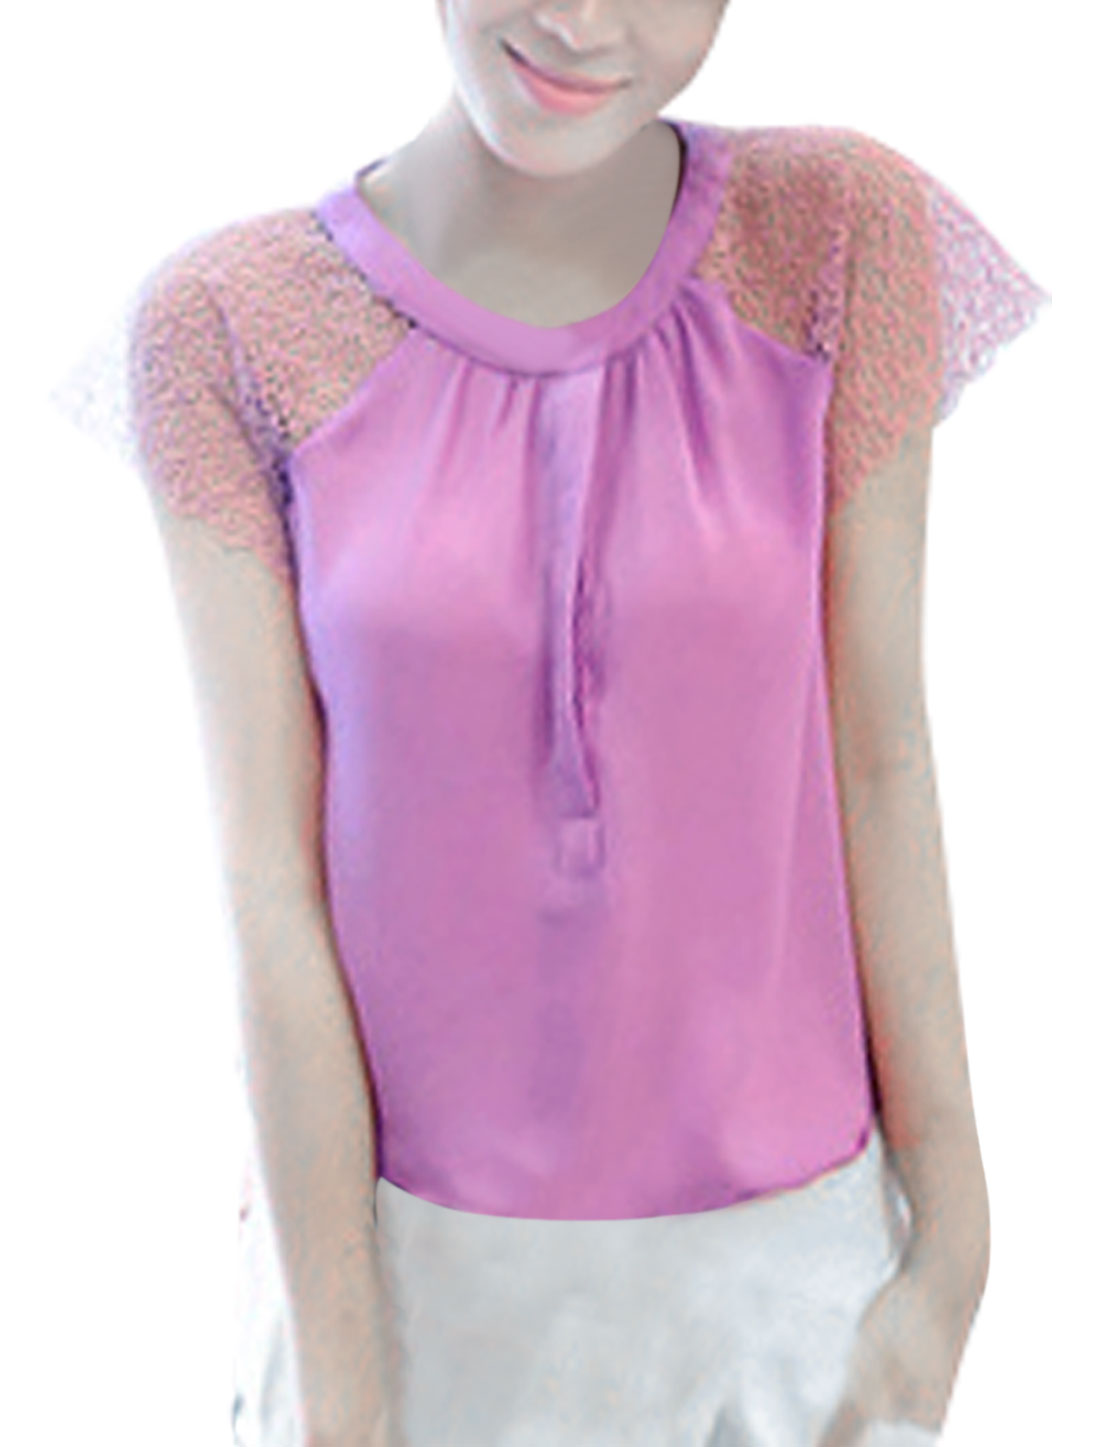 Ladies Round Neck Hollow Out Short Sleeve Top Shirt Lilac XS